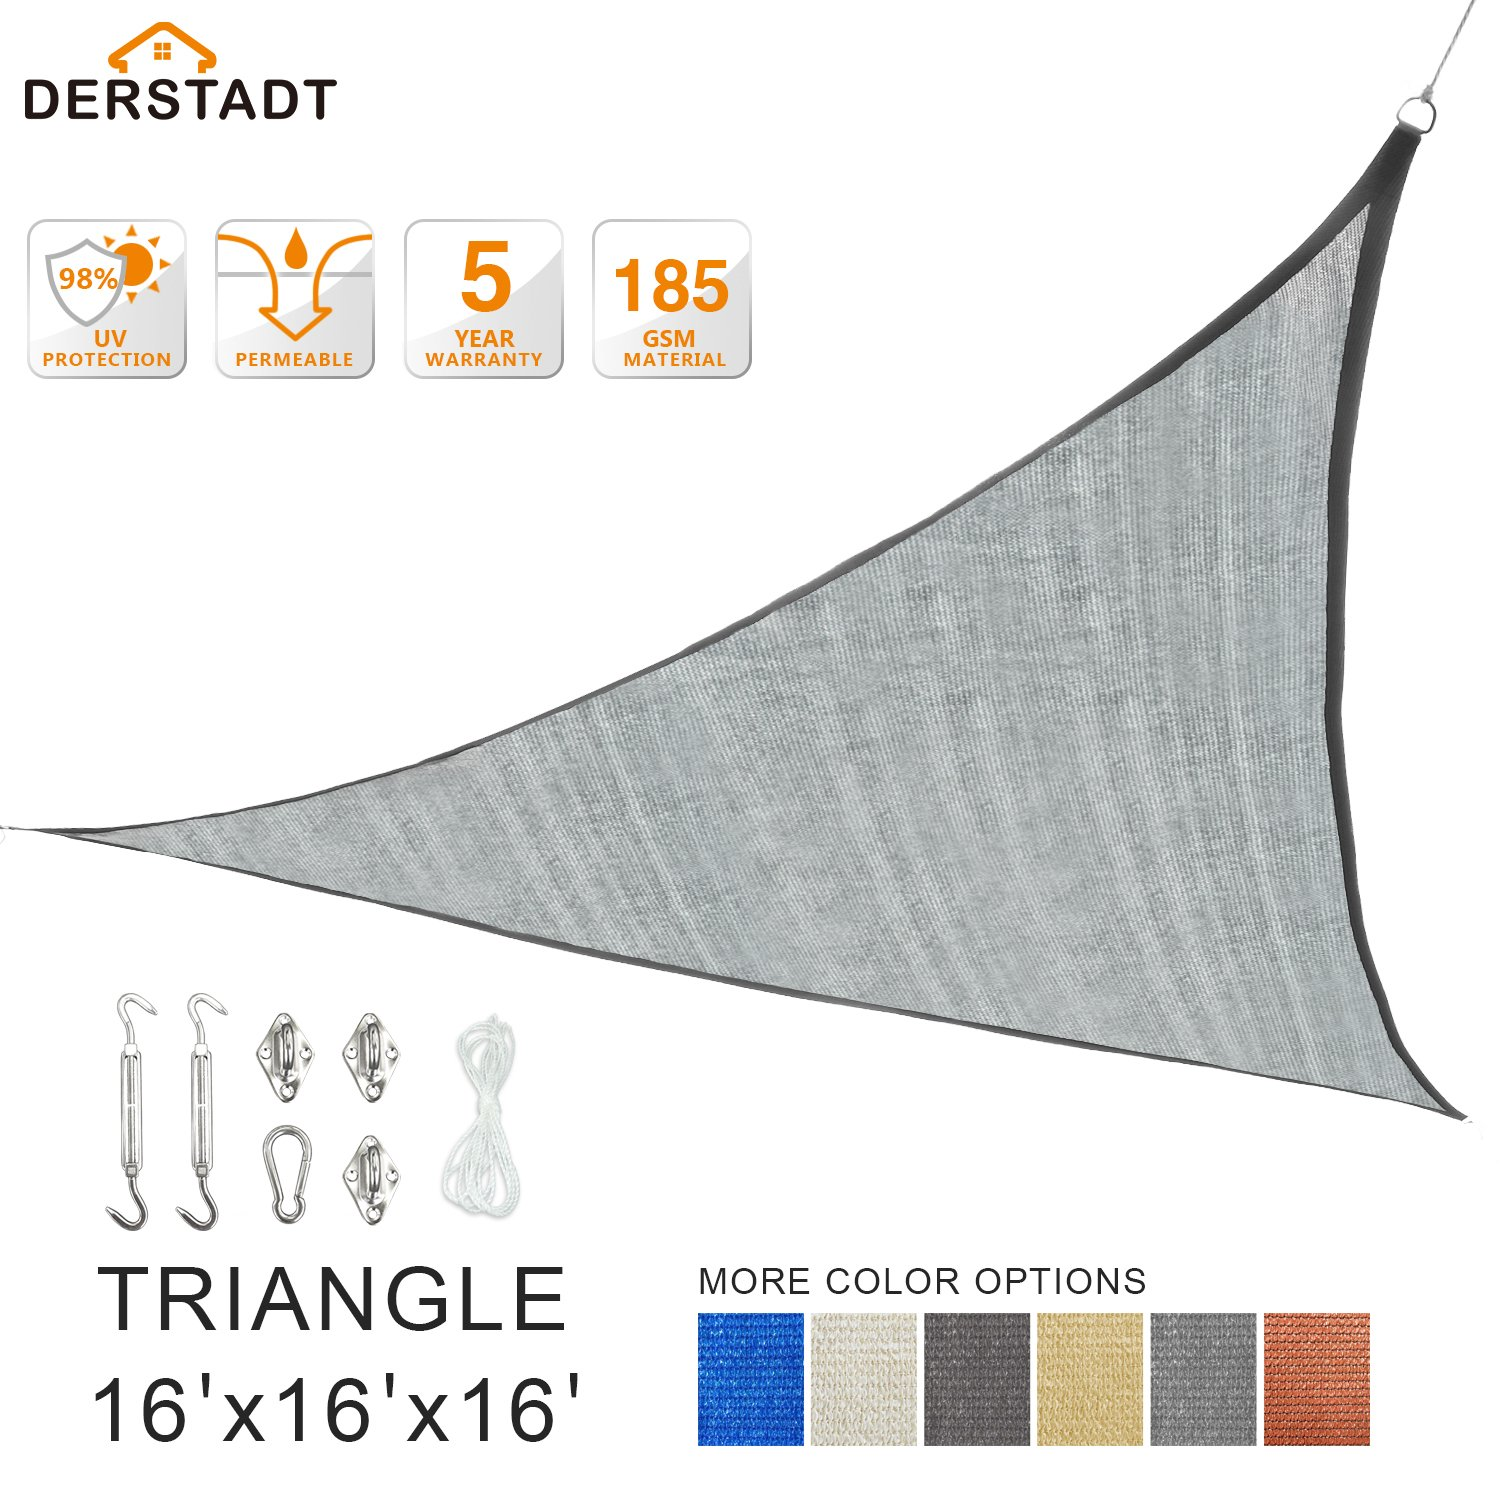 Derstadt 16' x 16' x 16' Triangle 98% UV Block Sun Shade Sail with Stainless Steel Hardware Kit, Top Outdoor Patio Canopy Backyard Shelter (5 Years Warranty, 185G HDPE, 24.6'PE Rope)(Silvery)